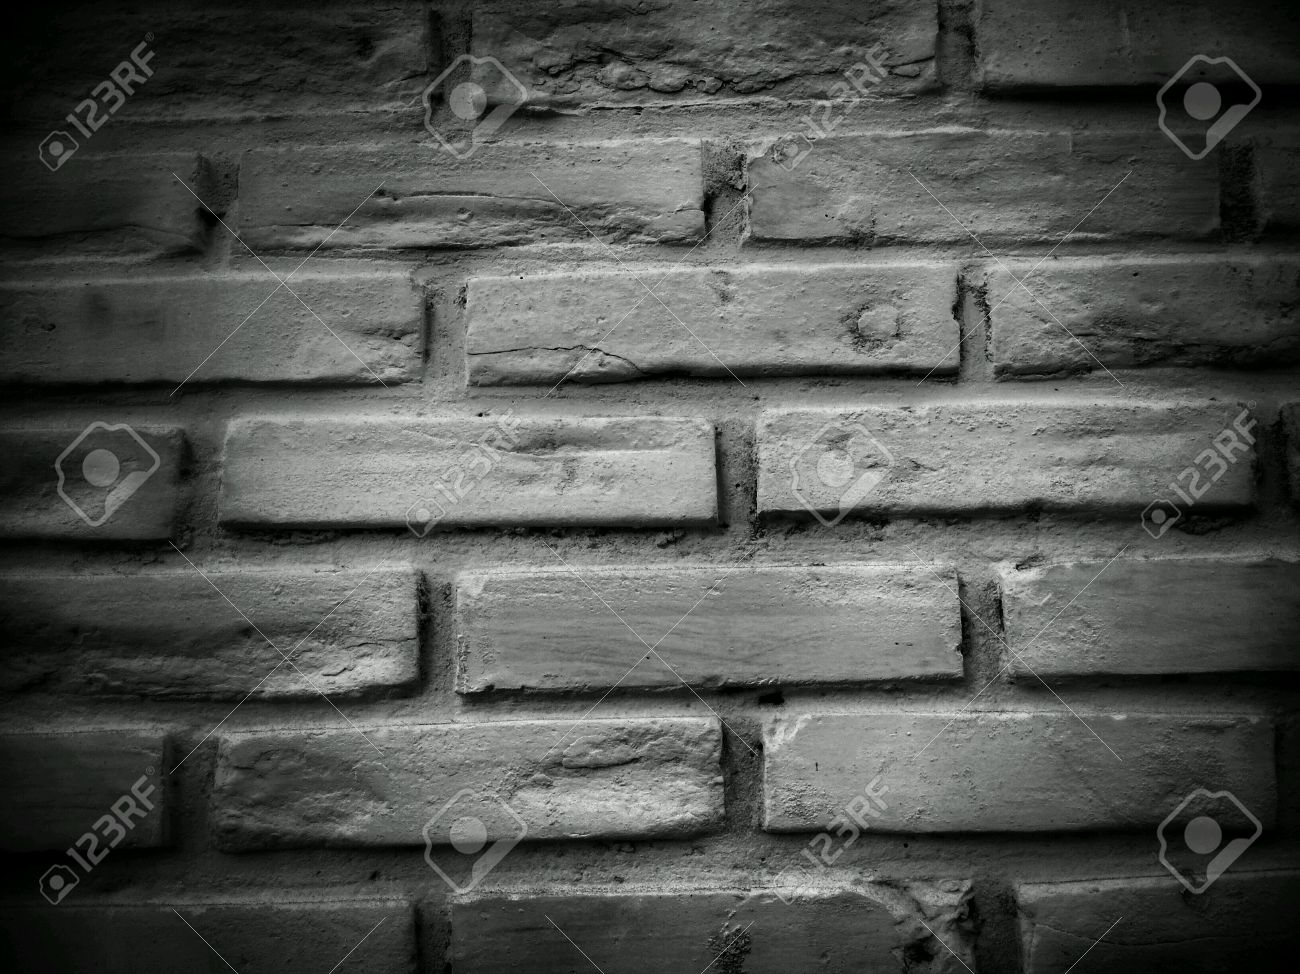 Grey Brick Background Abstract Wallpaper Texture Stock Photo Picture And Royalty Free Image Image 36208009